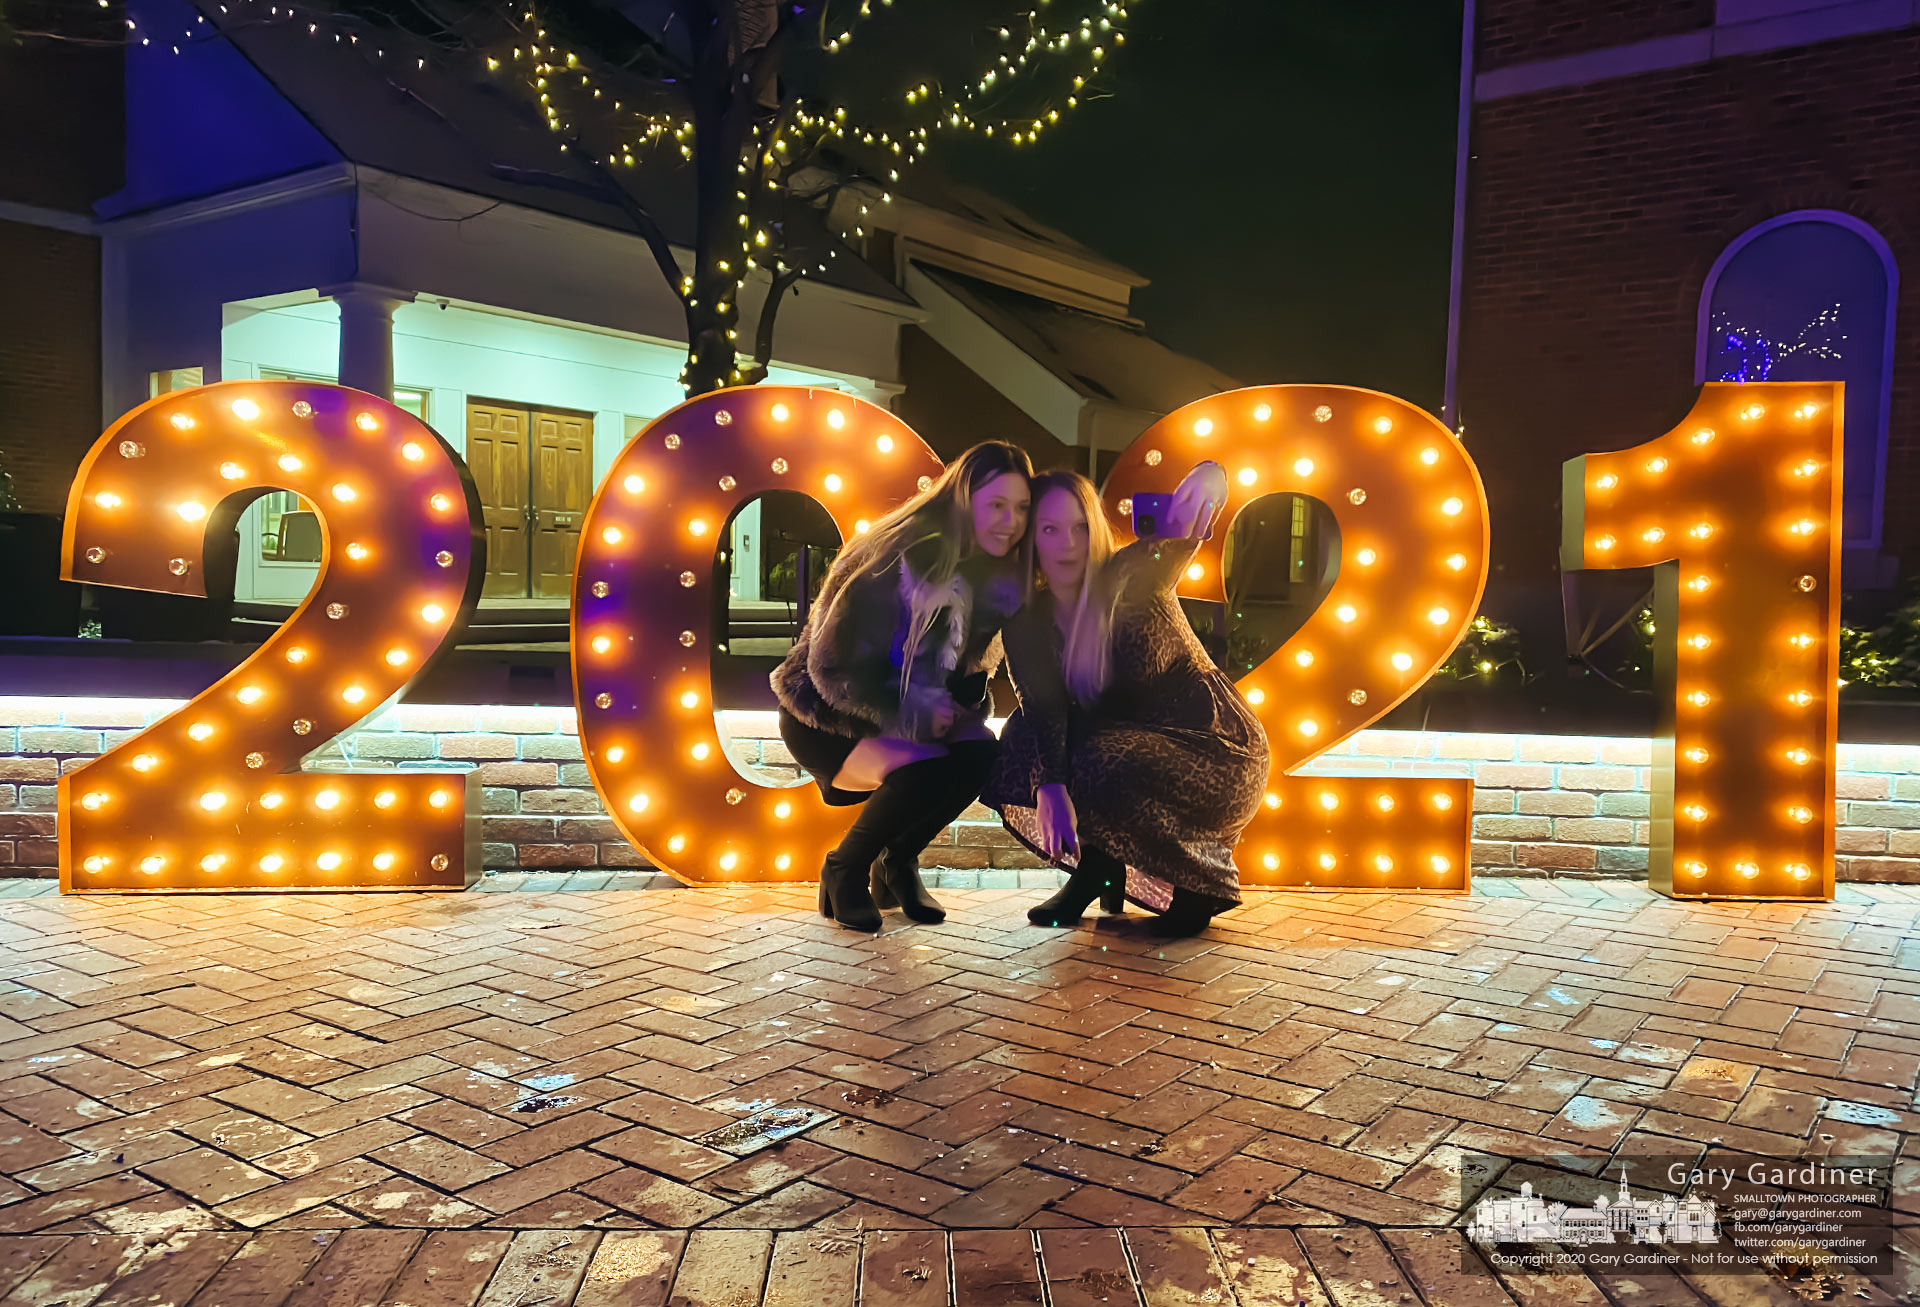 A mother and daughter pose for a selfie in front of the lighted 2021 signs placed in front of city hall in Westerville. Ohio. My Final Photo for Dec. 31, 2020.